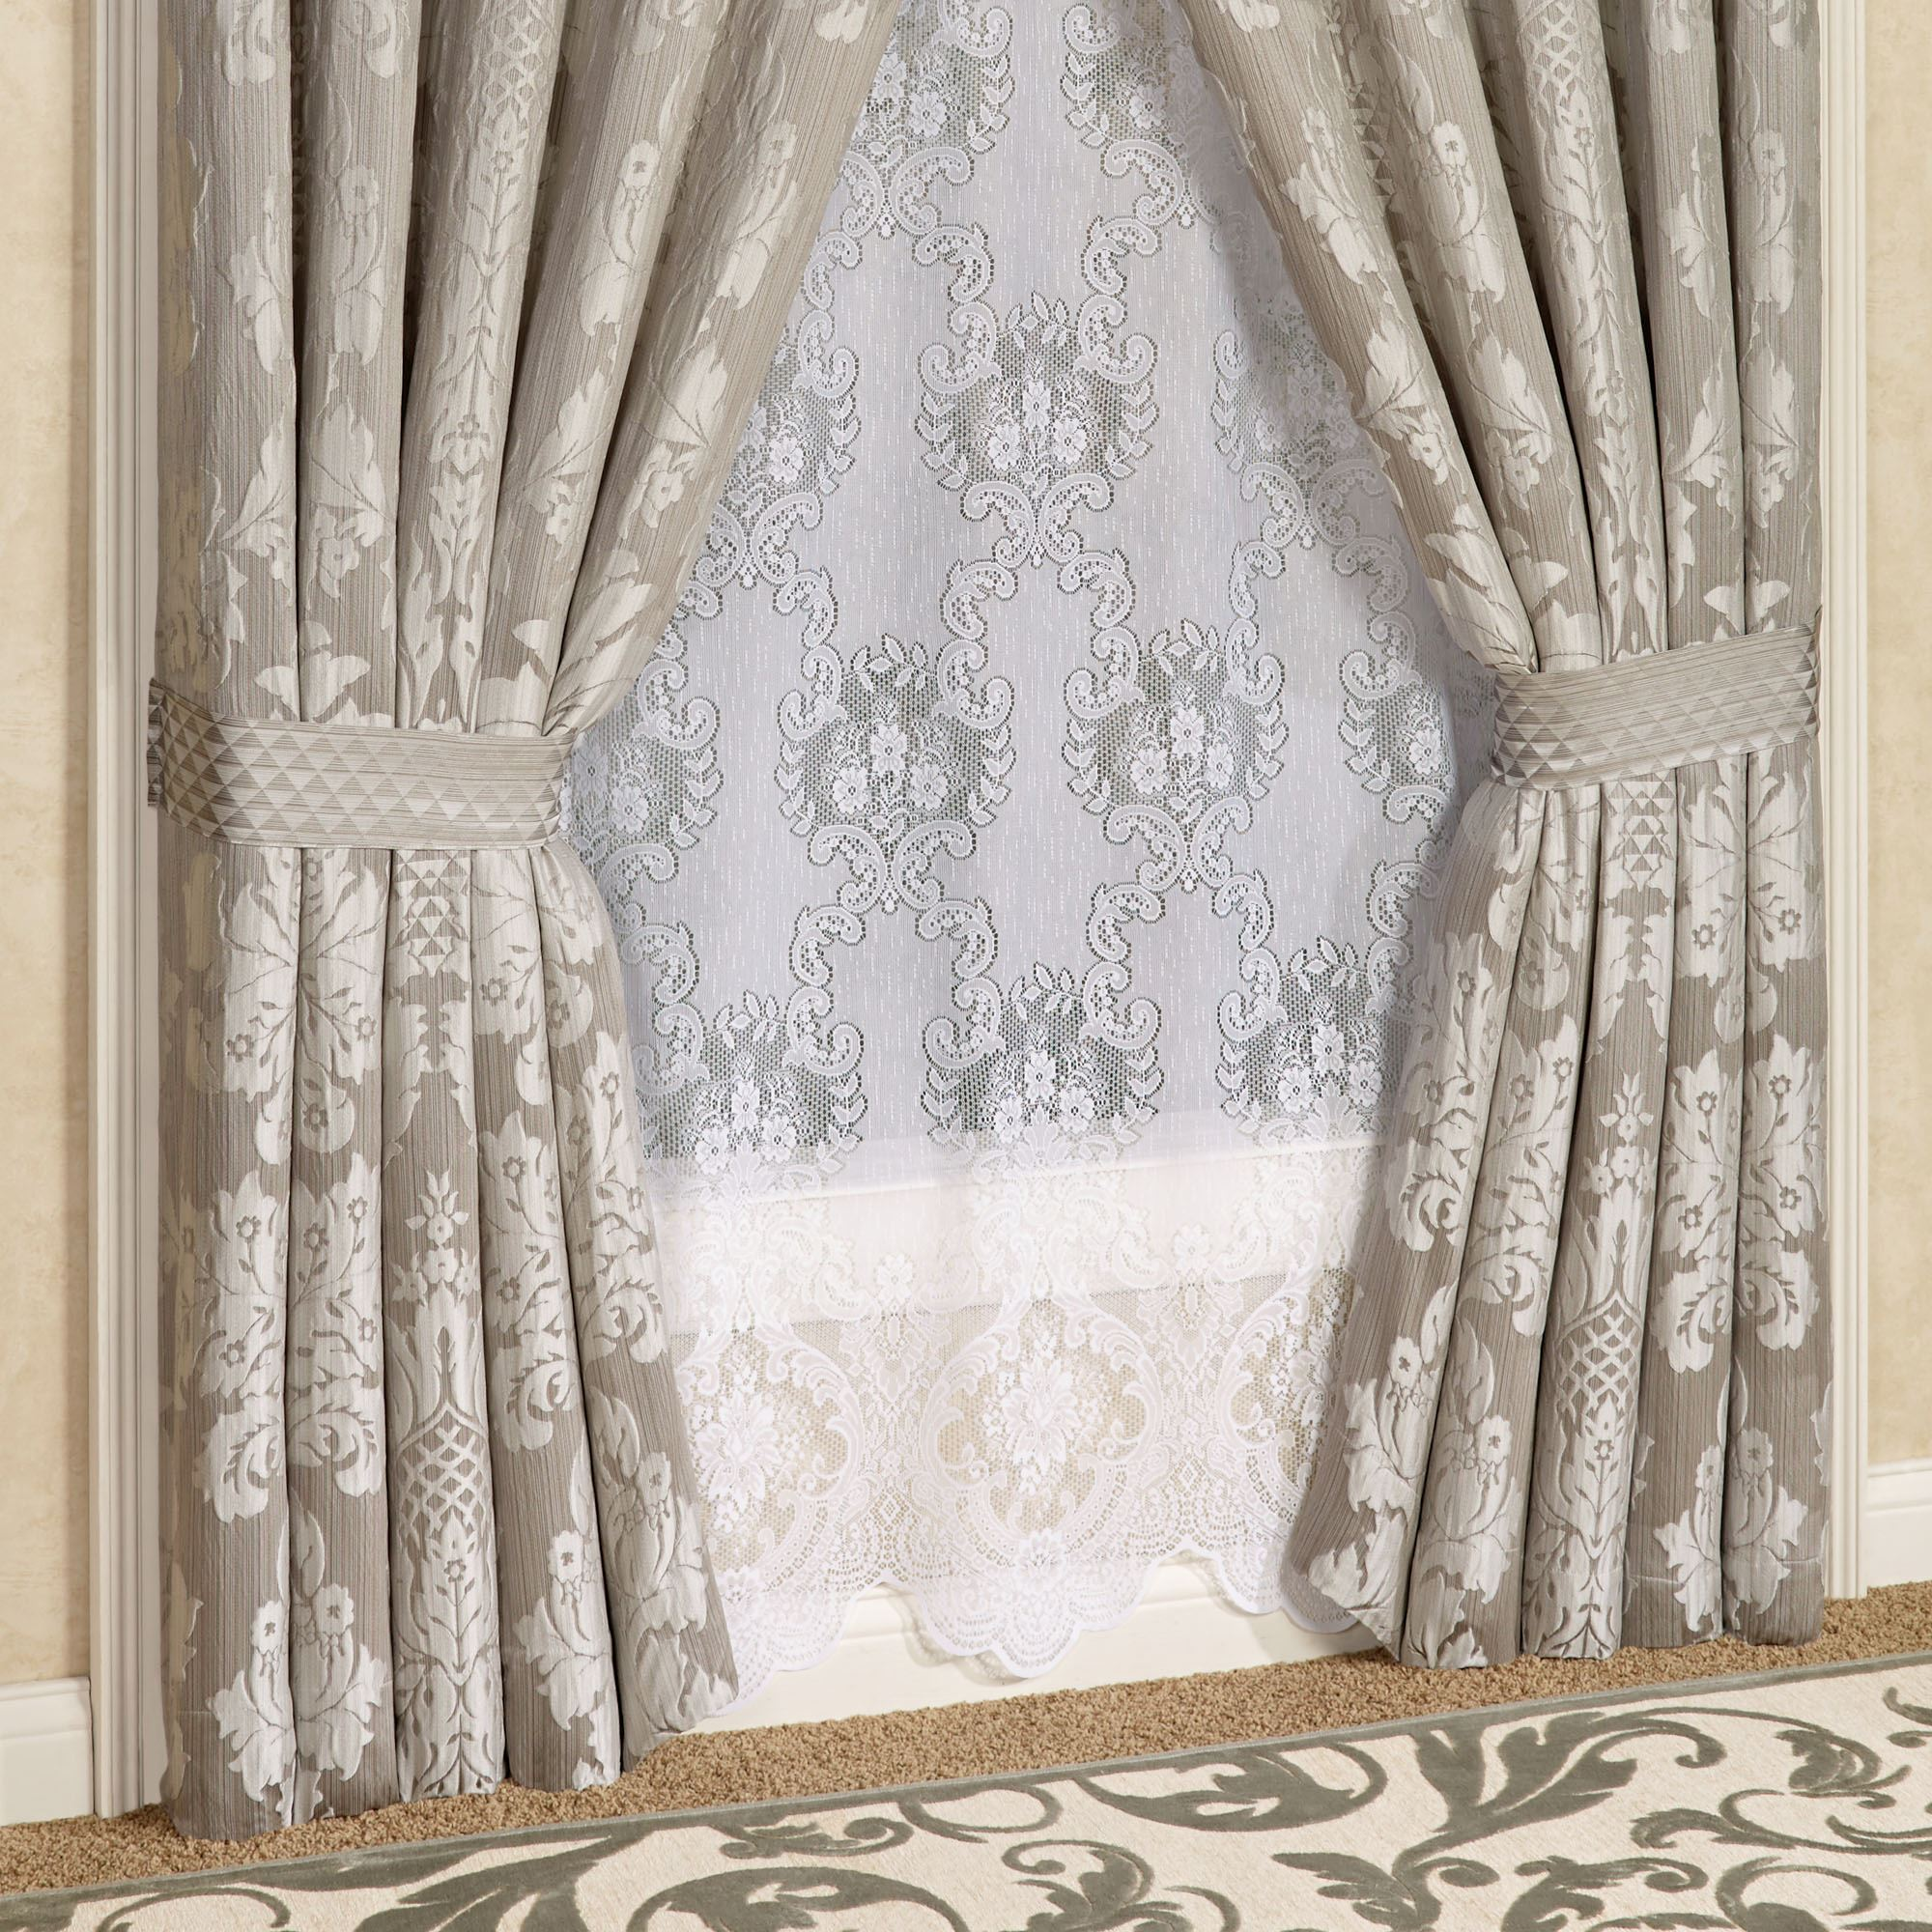 Chandelier Damask Window Treatment by J Queen New York